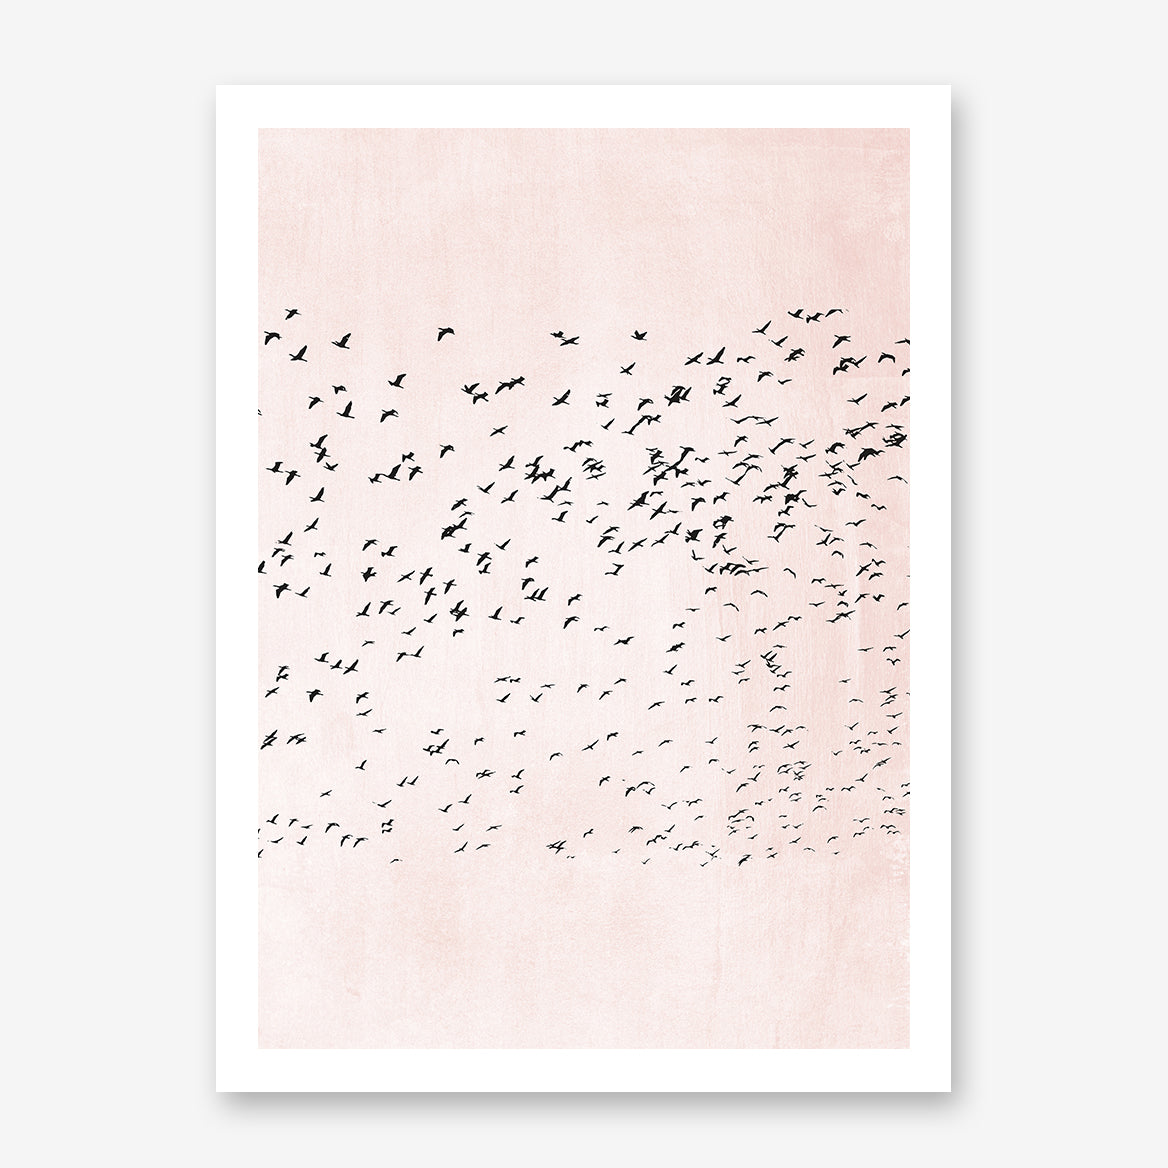 Illustration print by Kubistika, with black birds, on pink background.